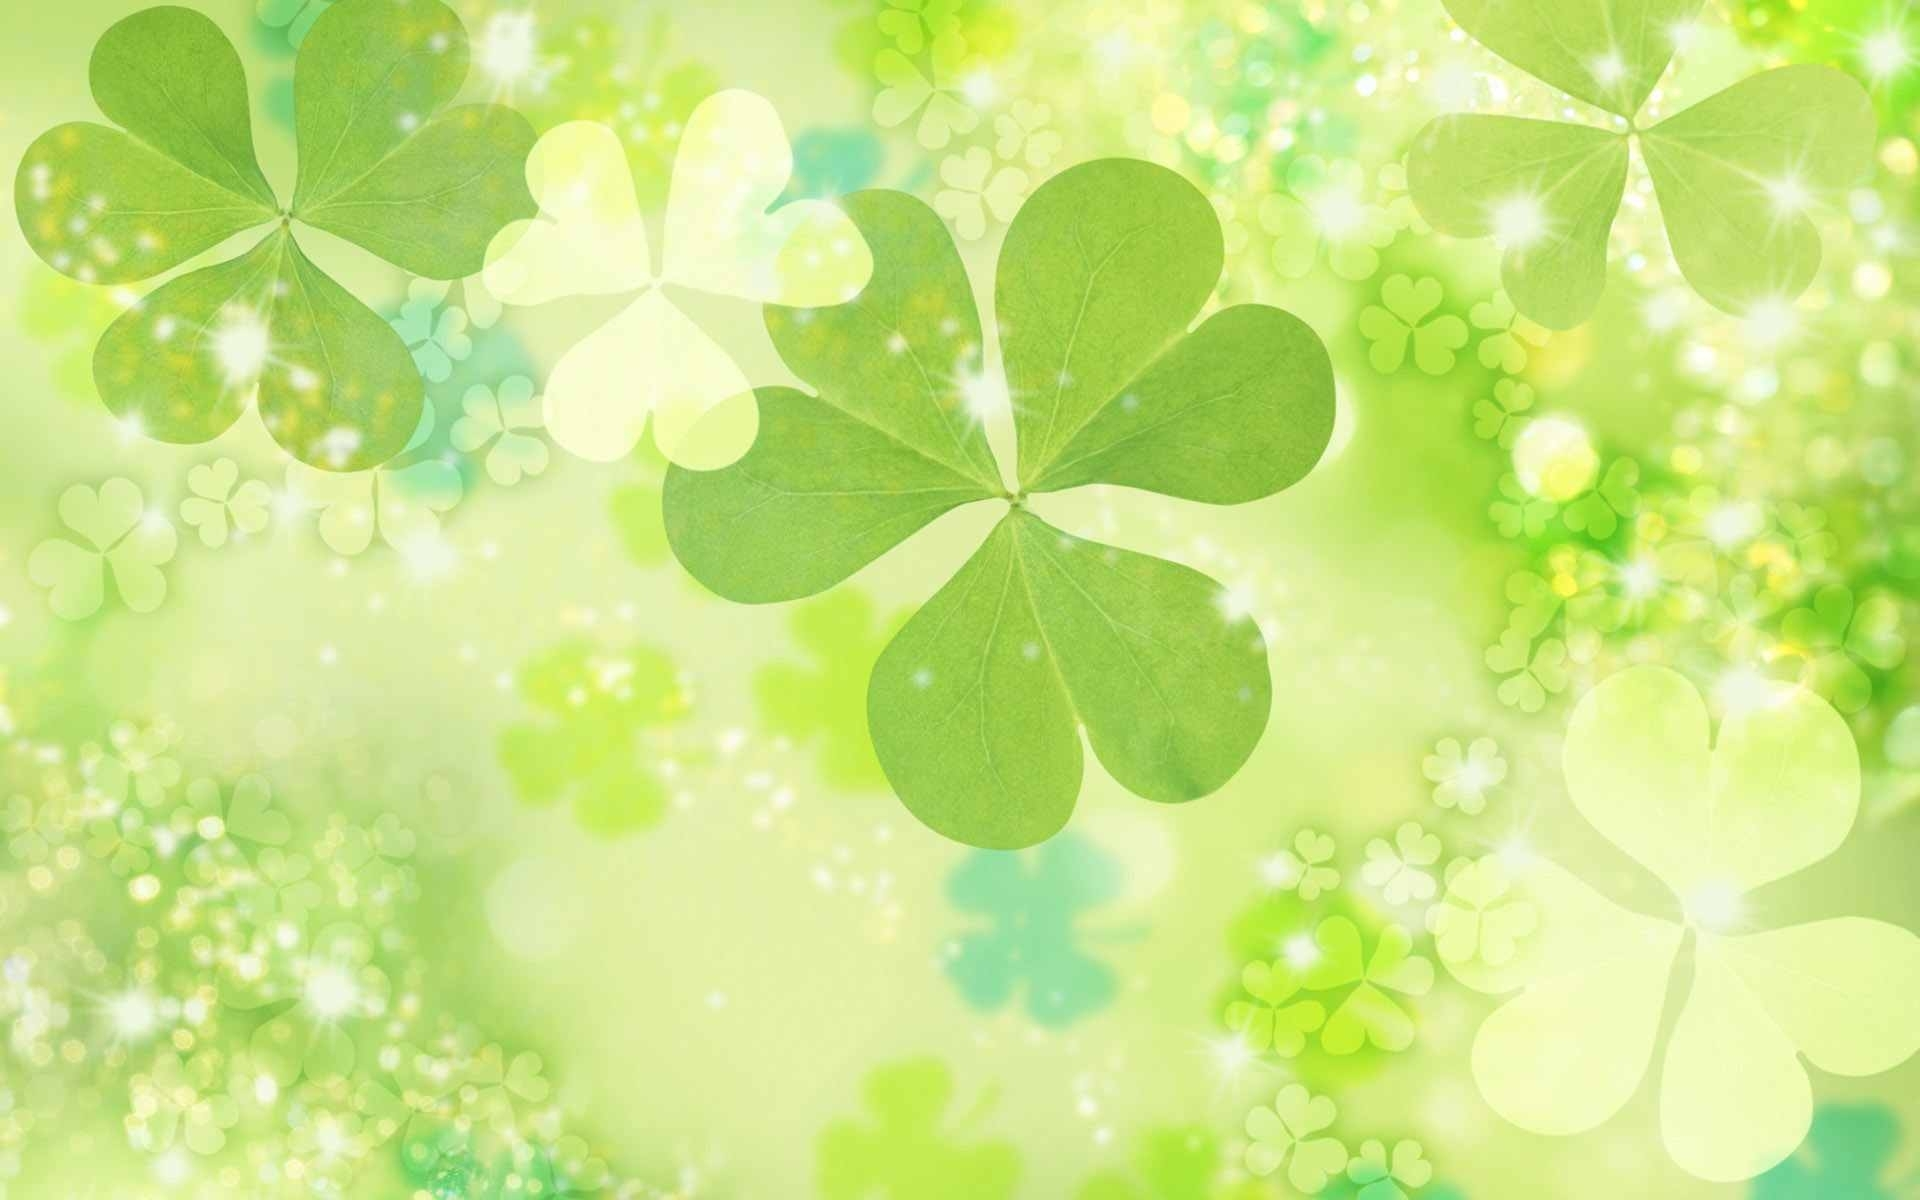 st patricks day backgrounds - wallpaper cave